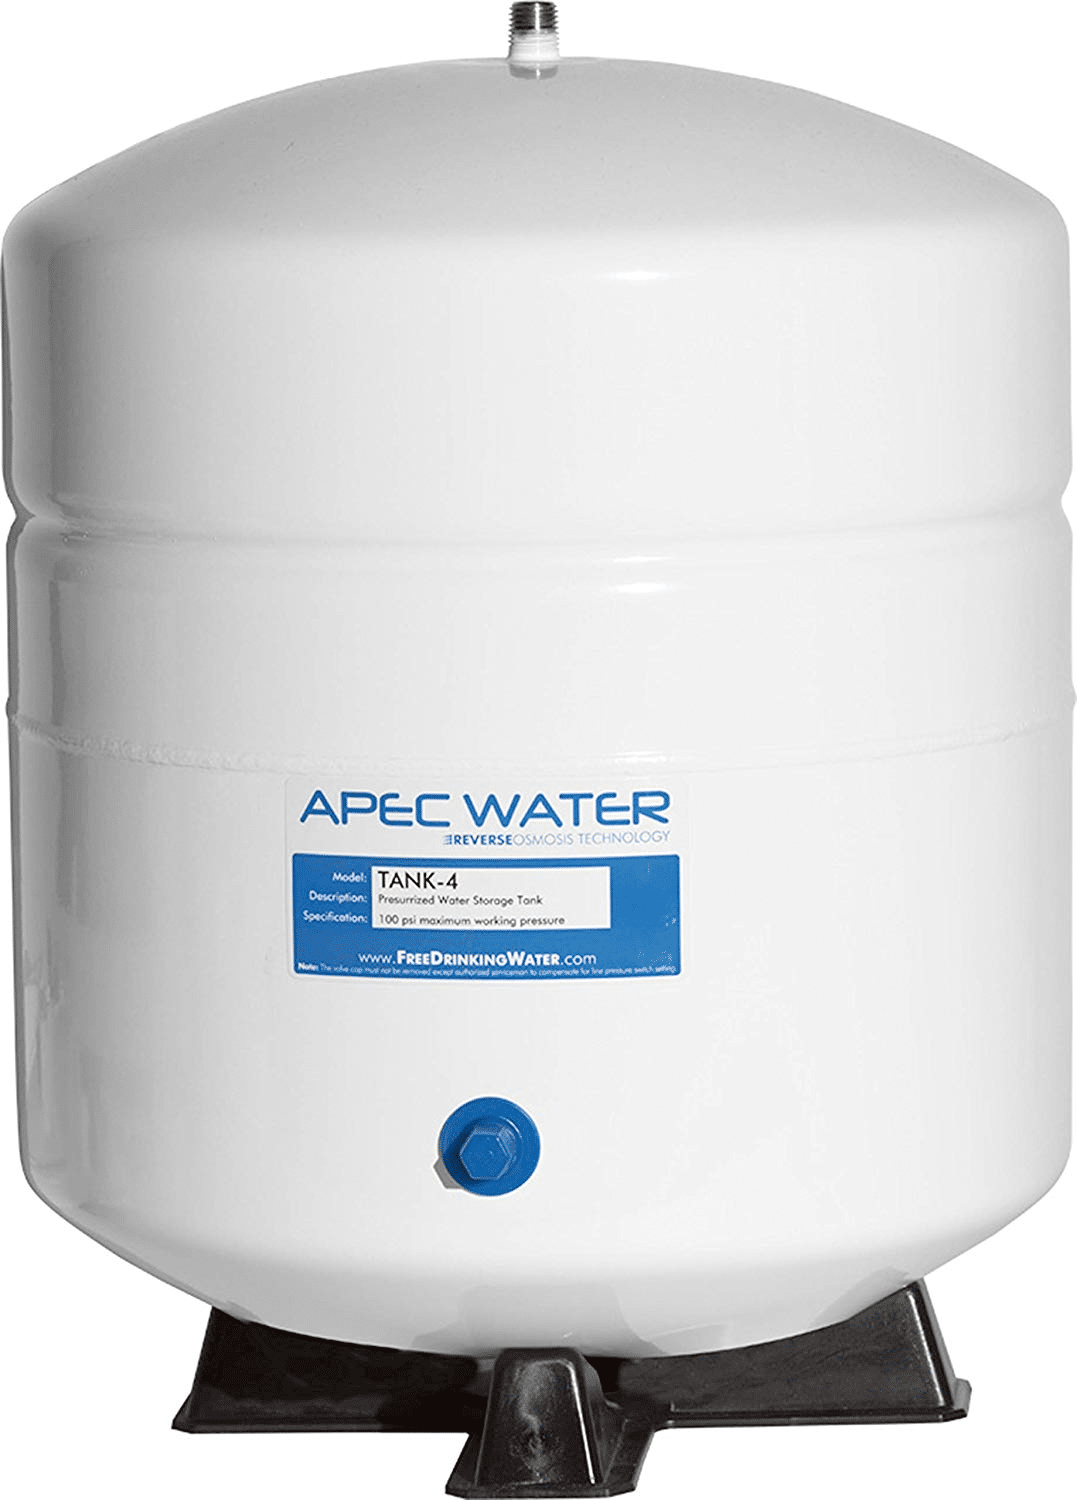 4 gallon Residential Pre-Pressurized Reverse Osmosis Water Storage Tank